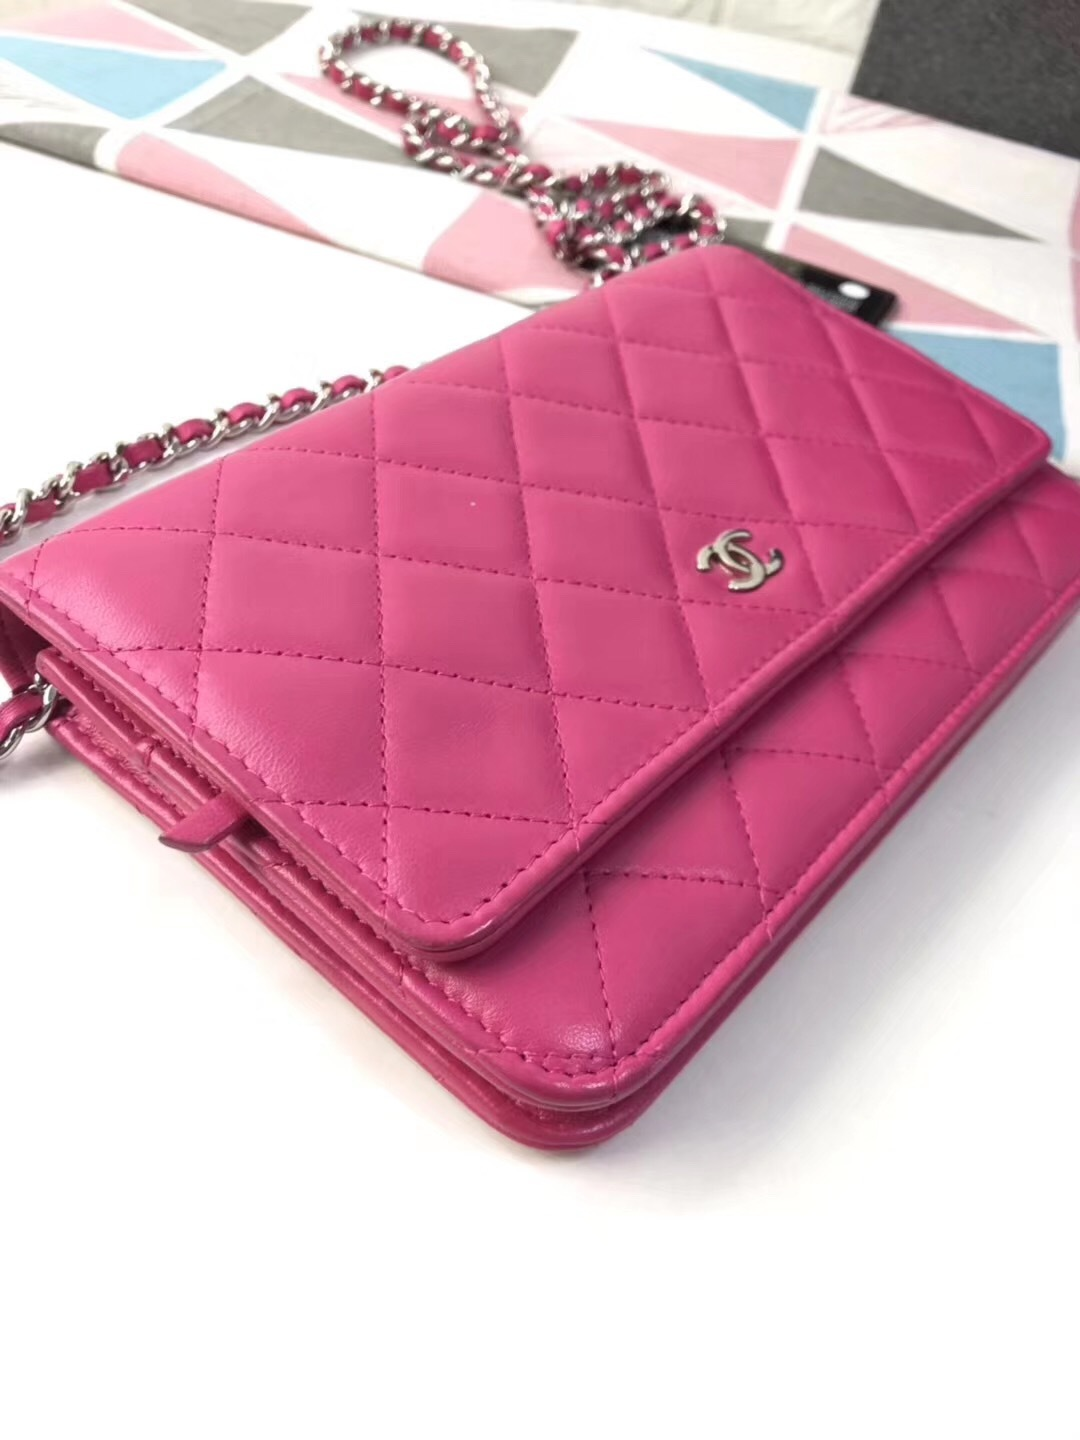 100% AUTH CHANEL WOC Quilted Lambskin PINK Wallet on Chain Flap Bag SHW image 3